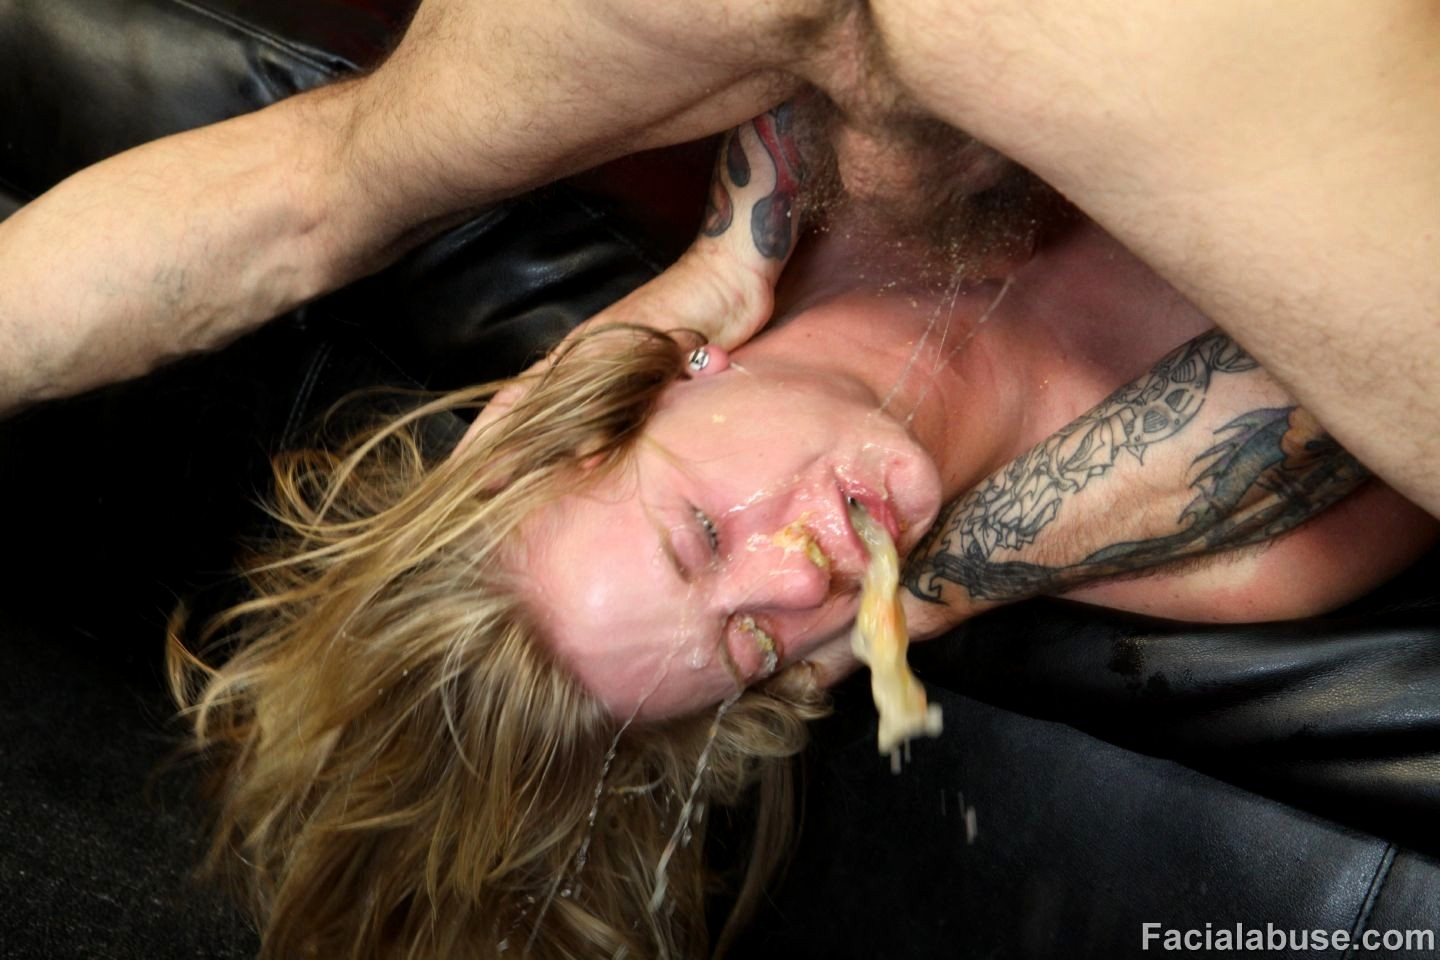 Most Disgusting Porn Pics